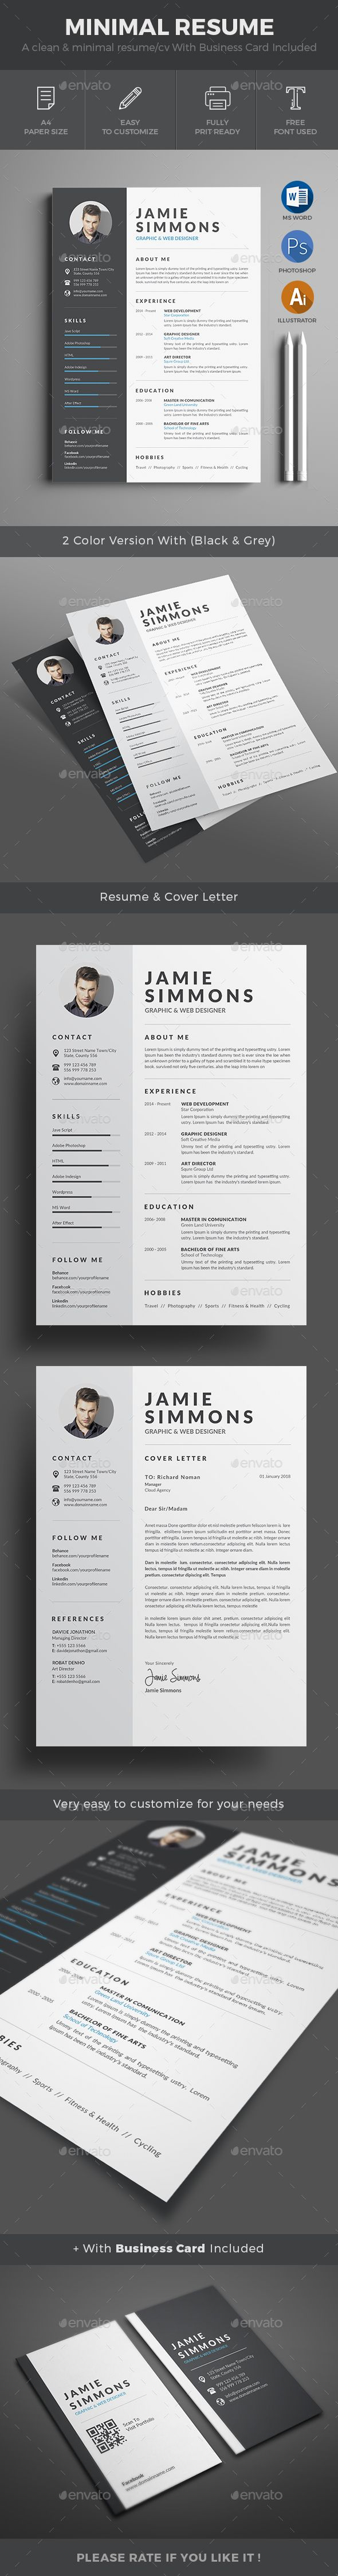 Resume 300 best Resume Templates images by